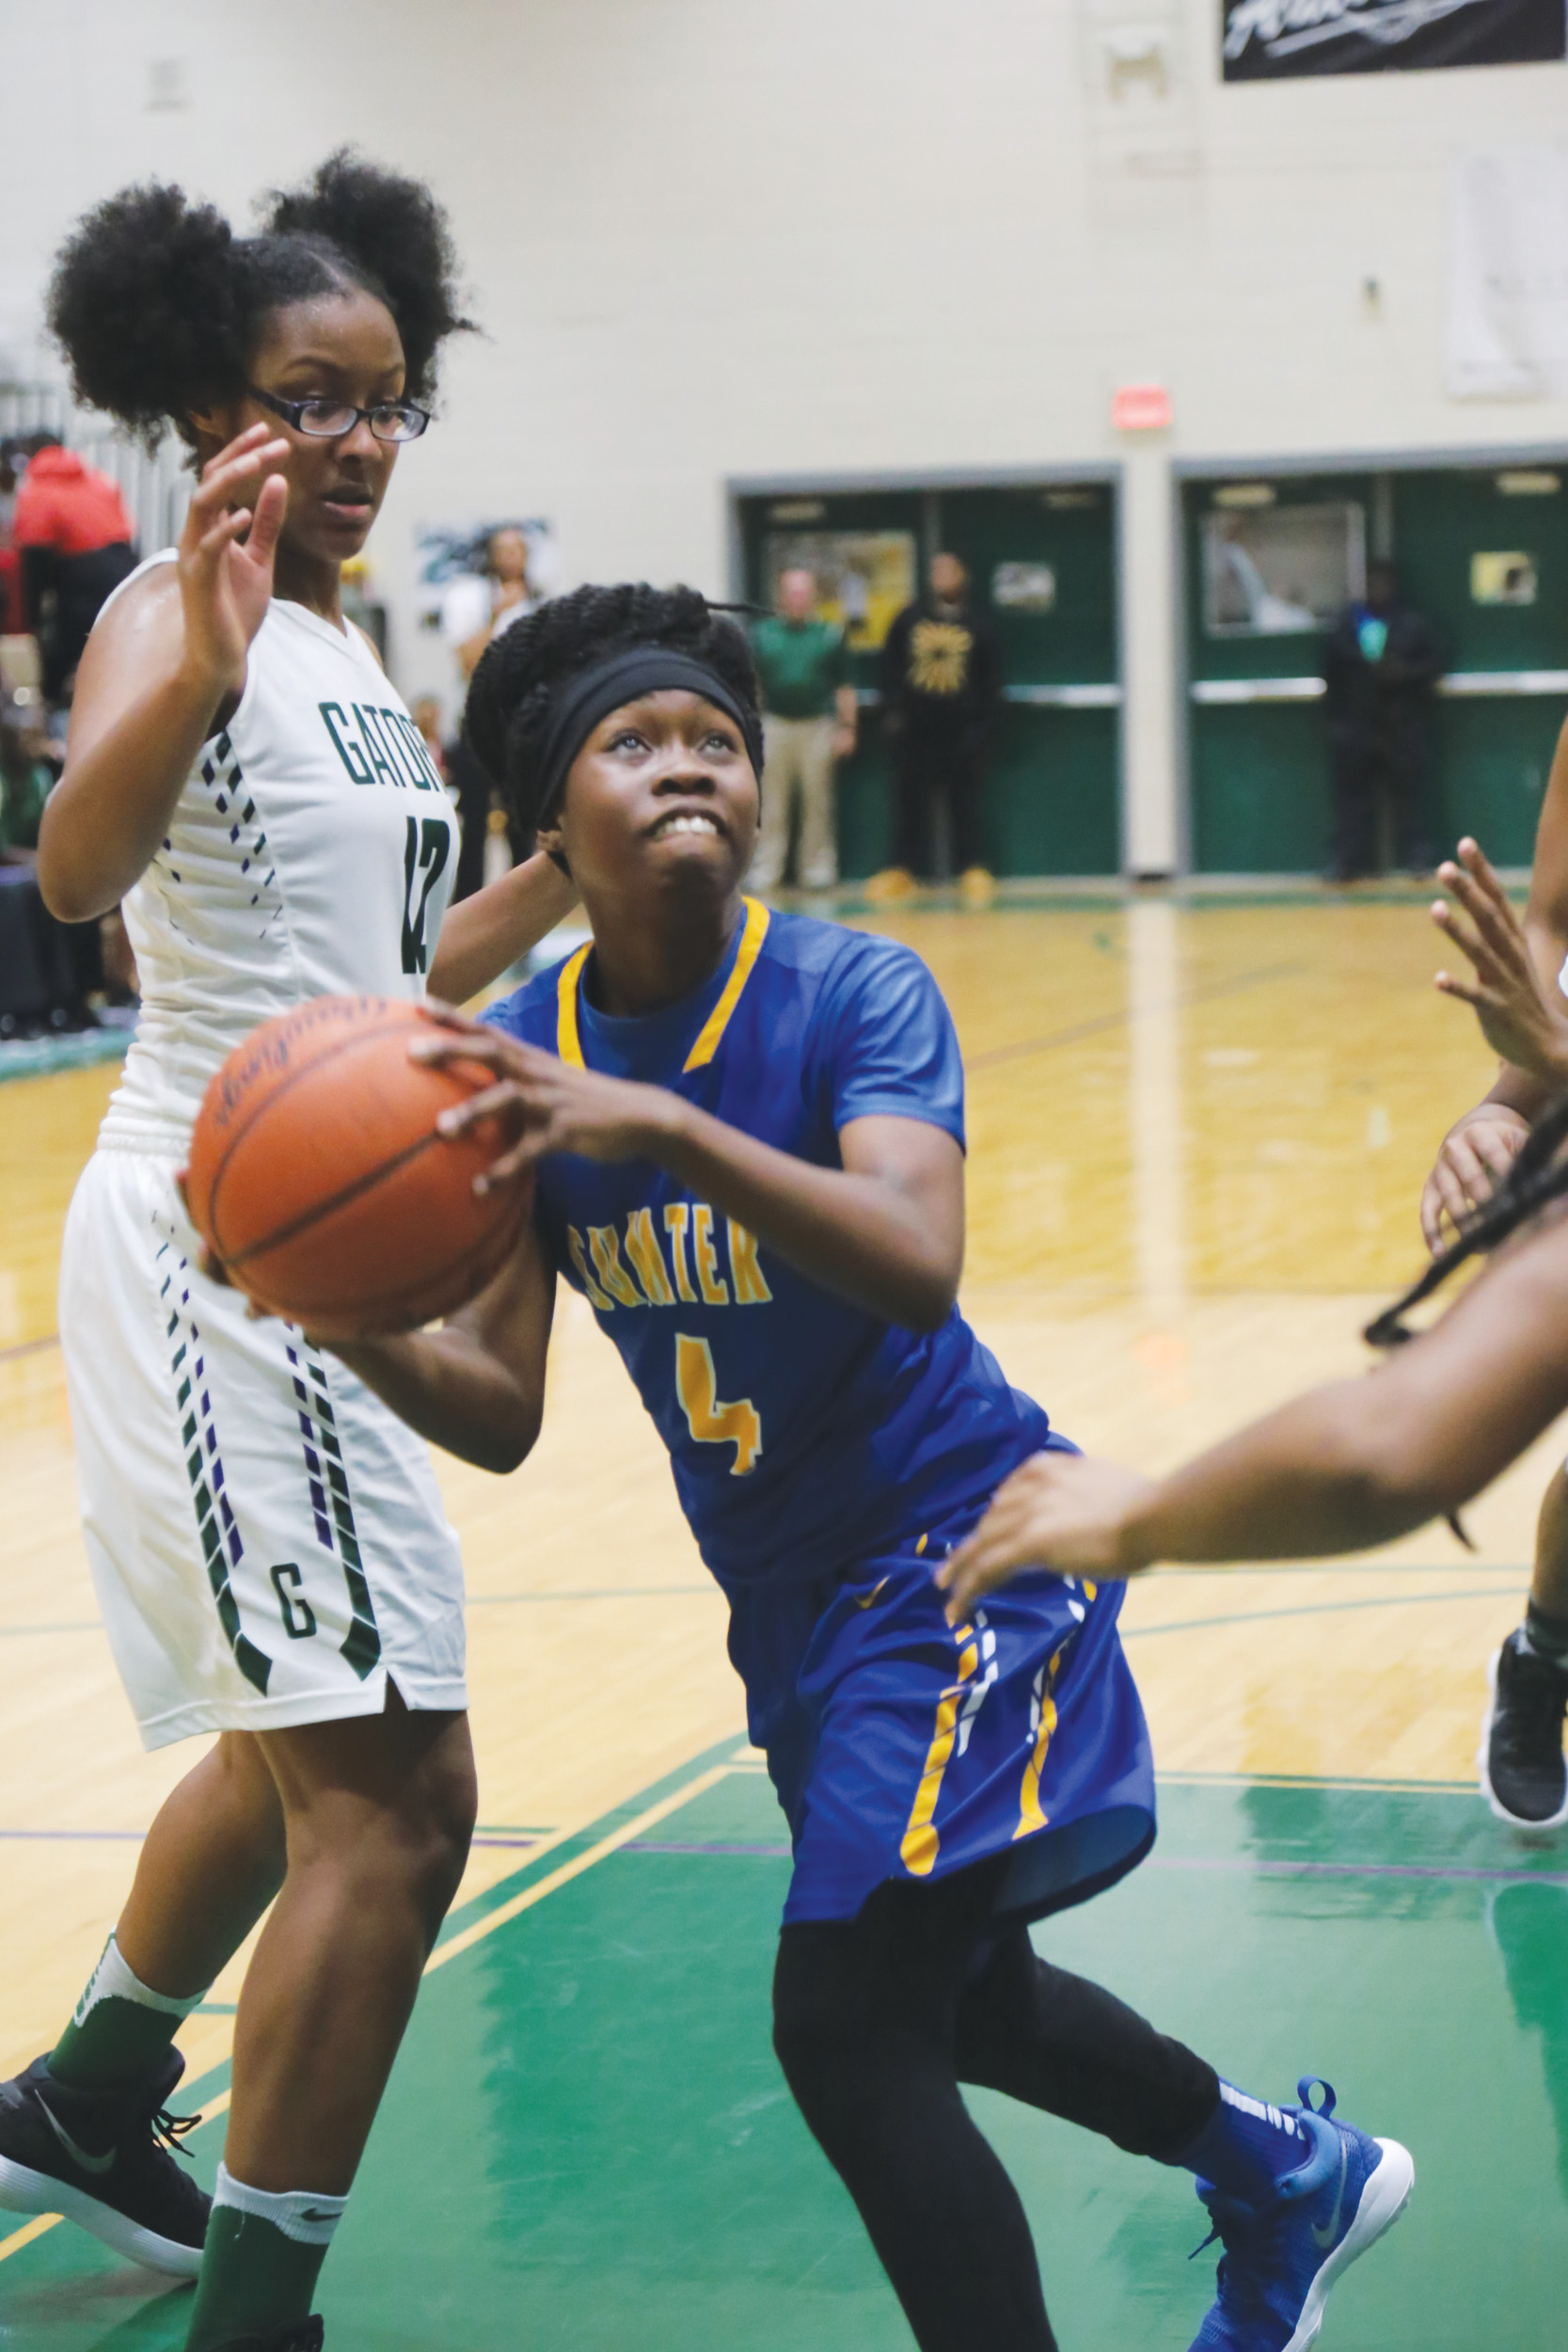 Sumter's Carnasia Wells (4)  looks for a shot against Lakewood's Rahteisha Burgess during the Lady Gamecocks' 38-30 victory on Friday at The Swamp.